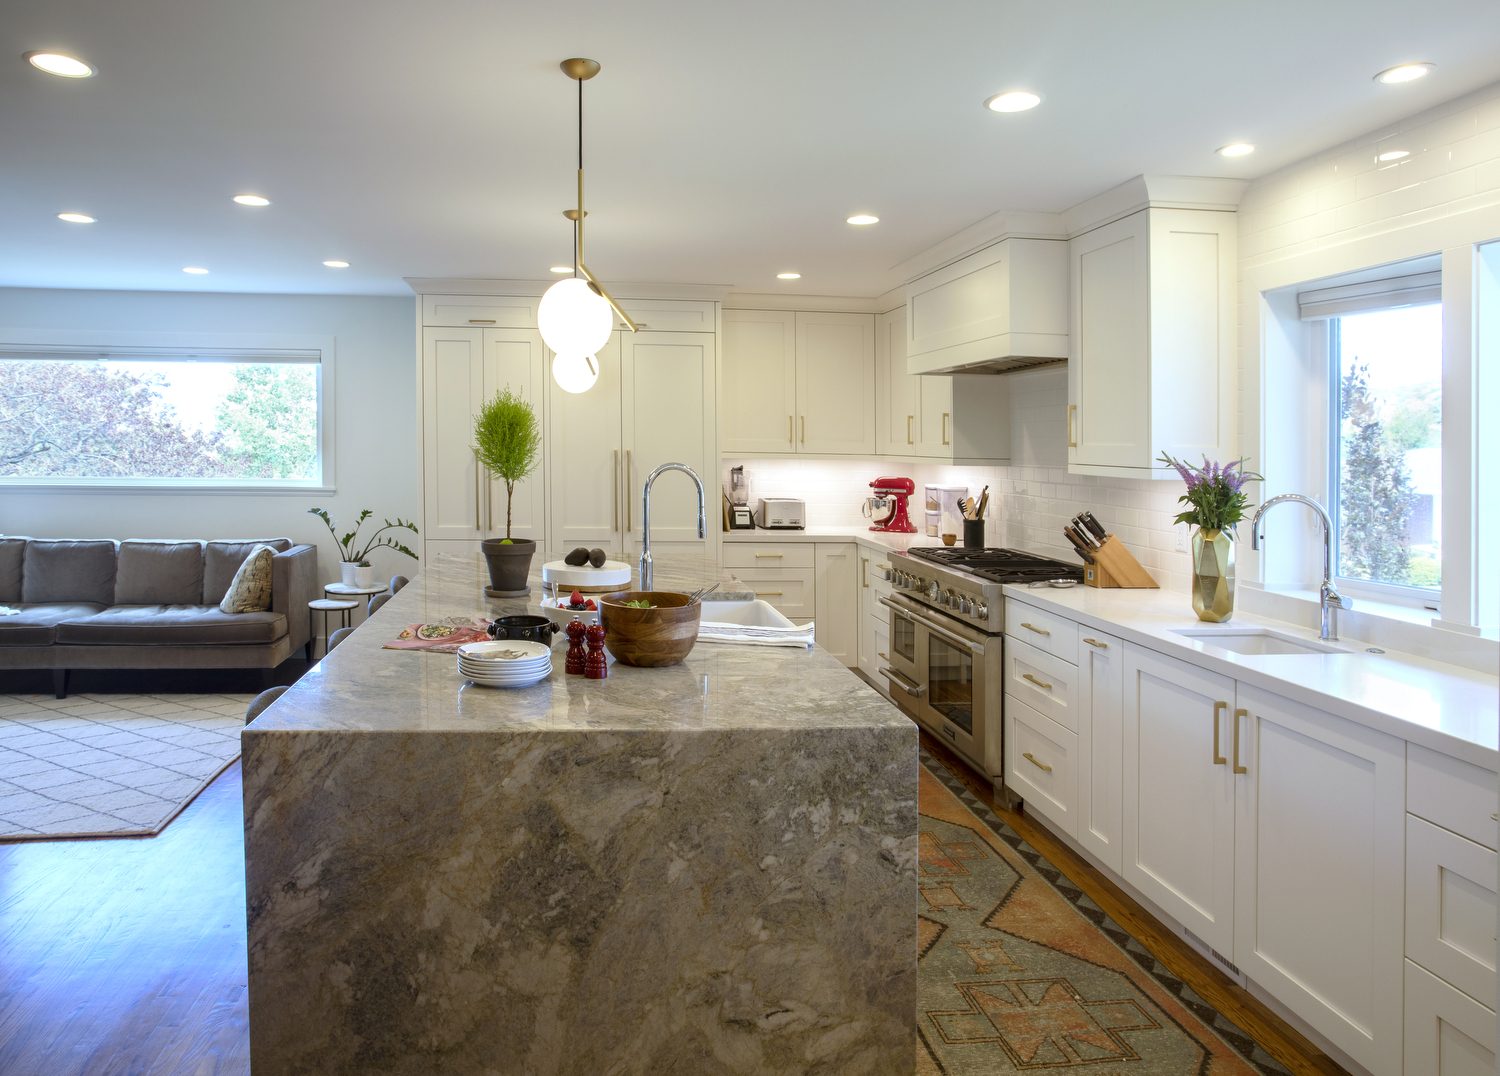 001 JAID  Crest View Kitchen June 2019.JPG